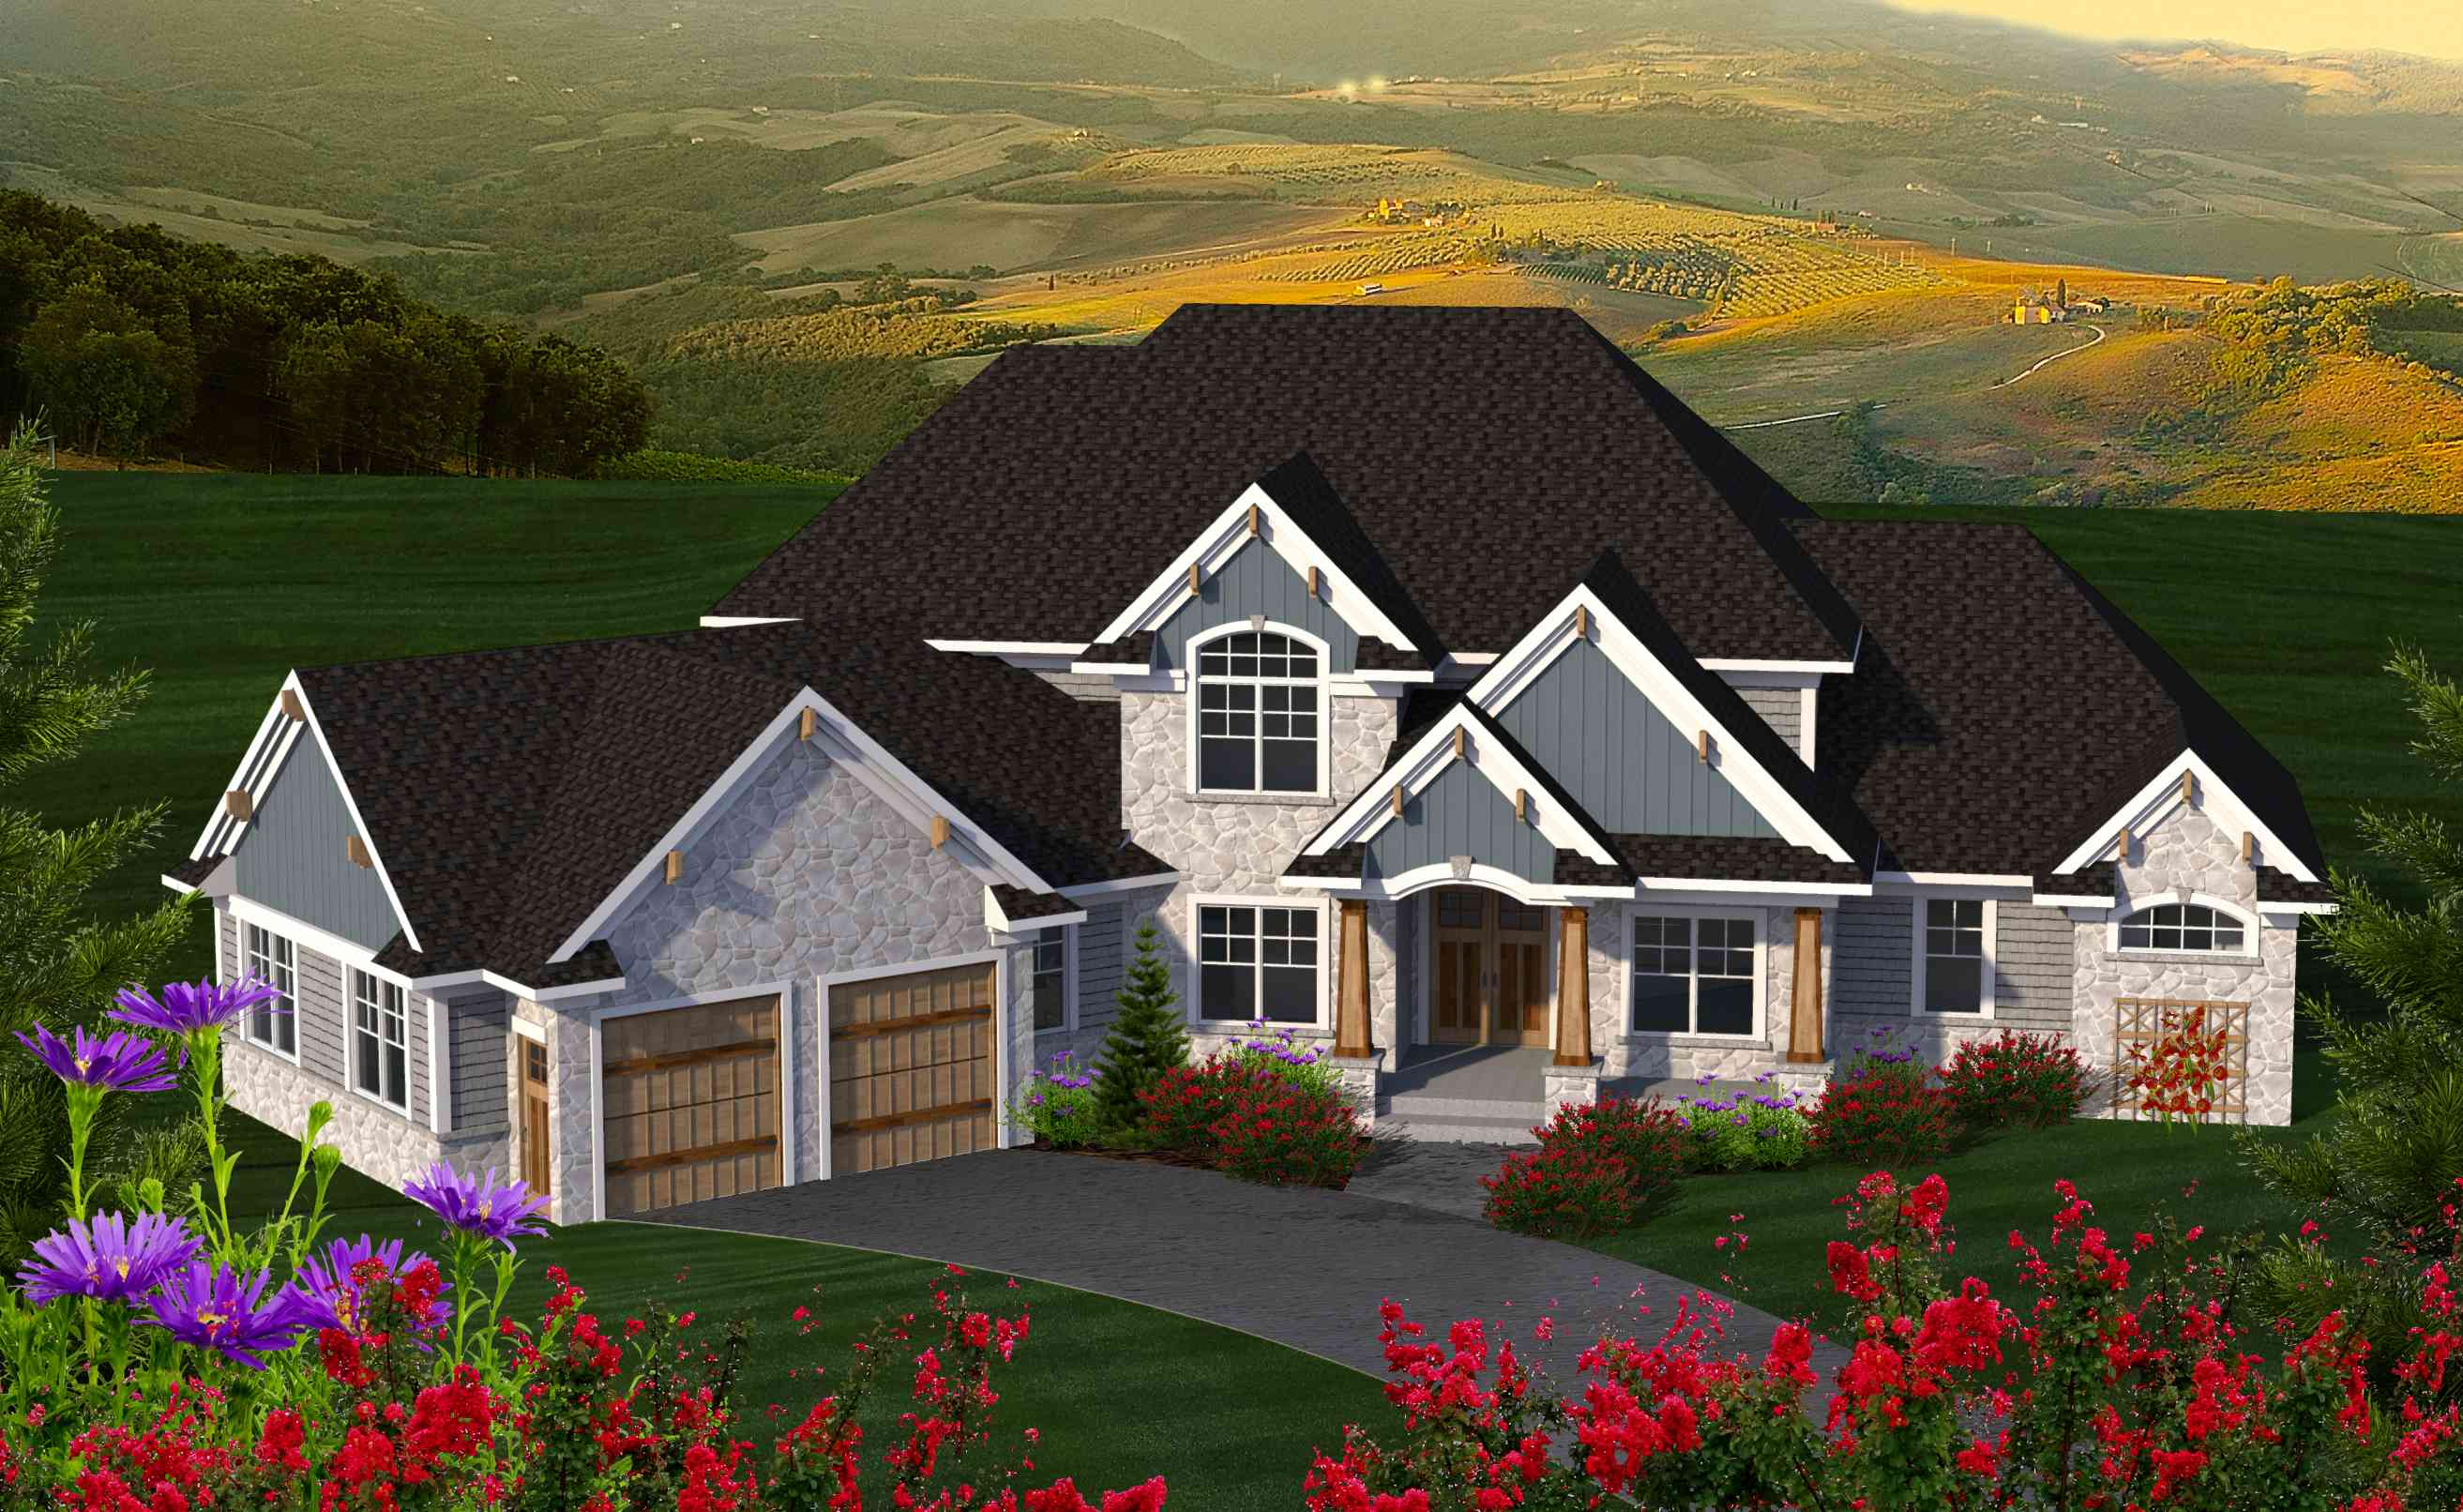 4 Bed House Plan With Angled Garage - 89977ah 1st Floor